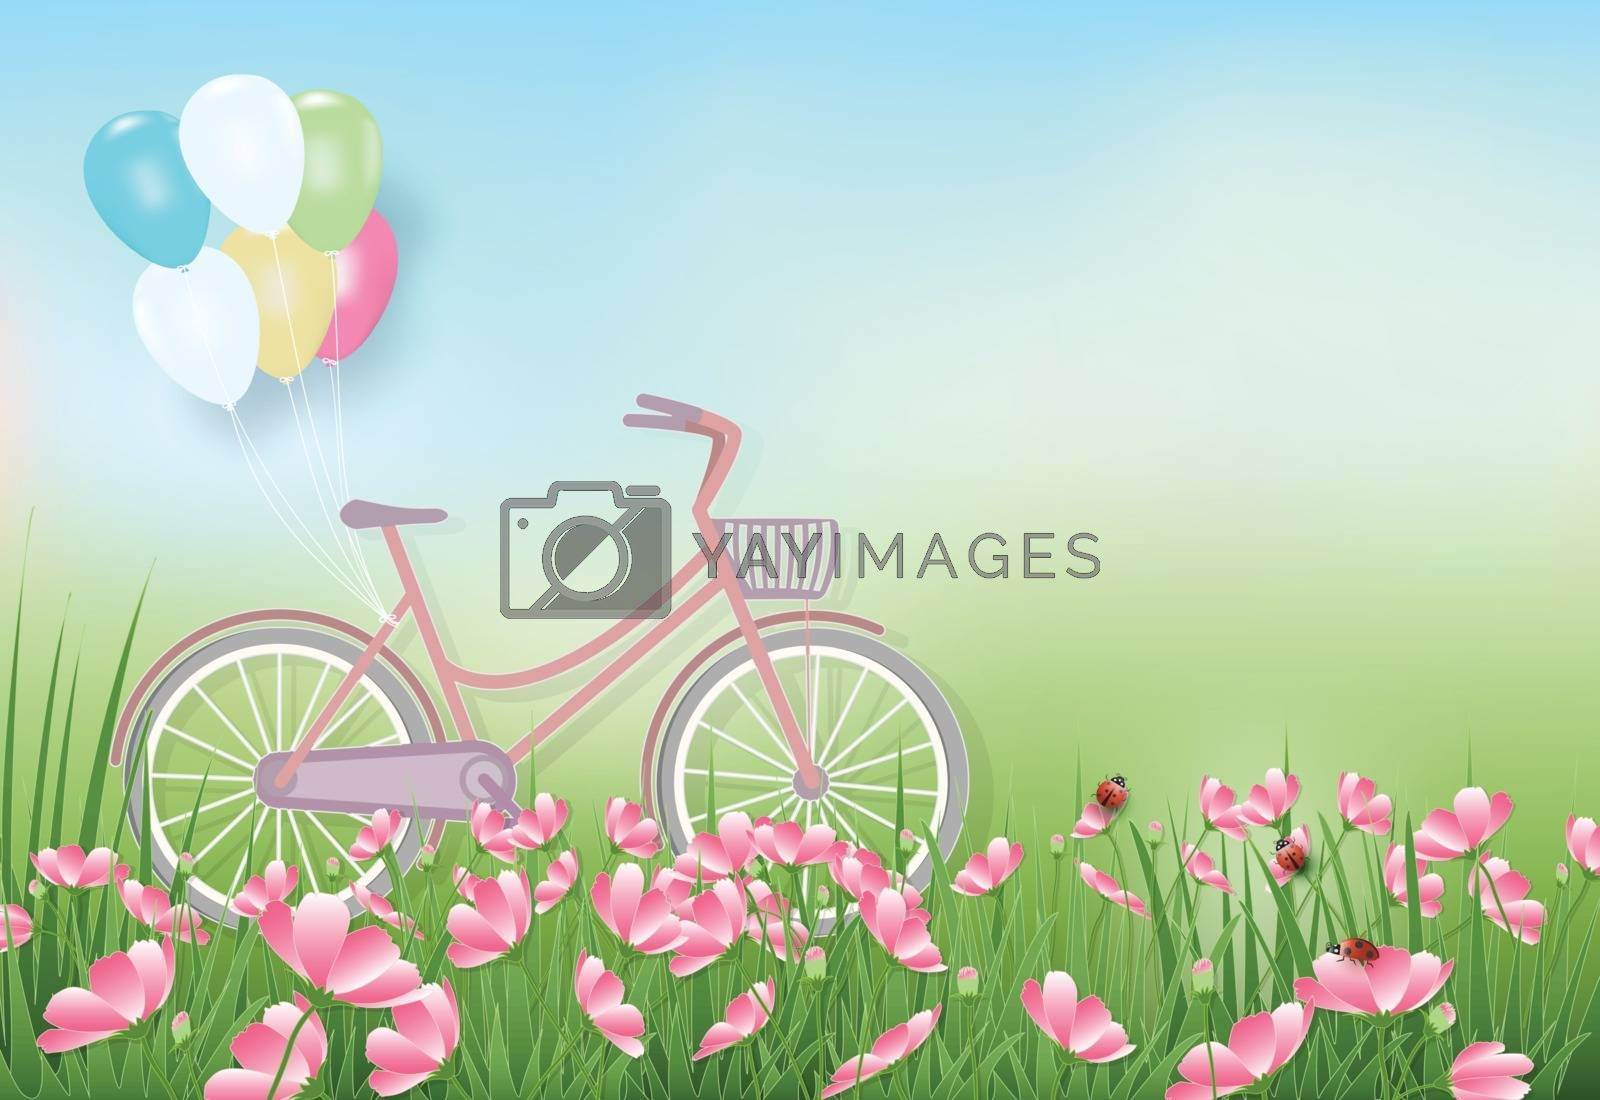 Cosmos flowers field and bicycle with balloons paper art, paper cut style background